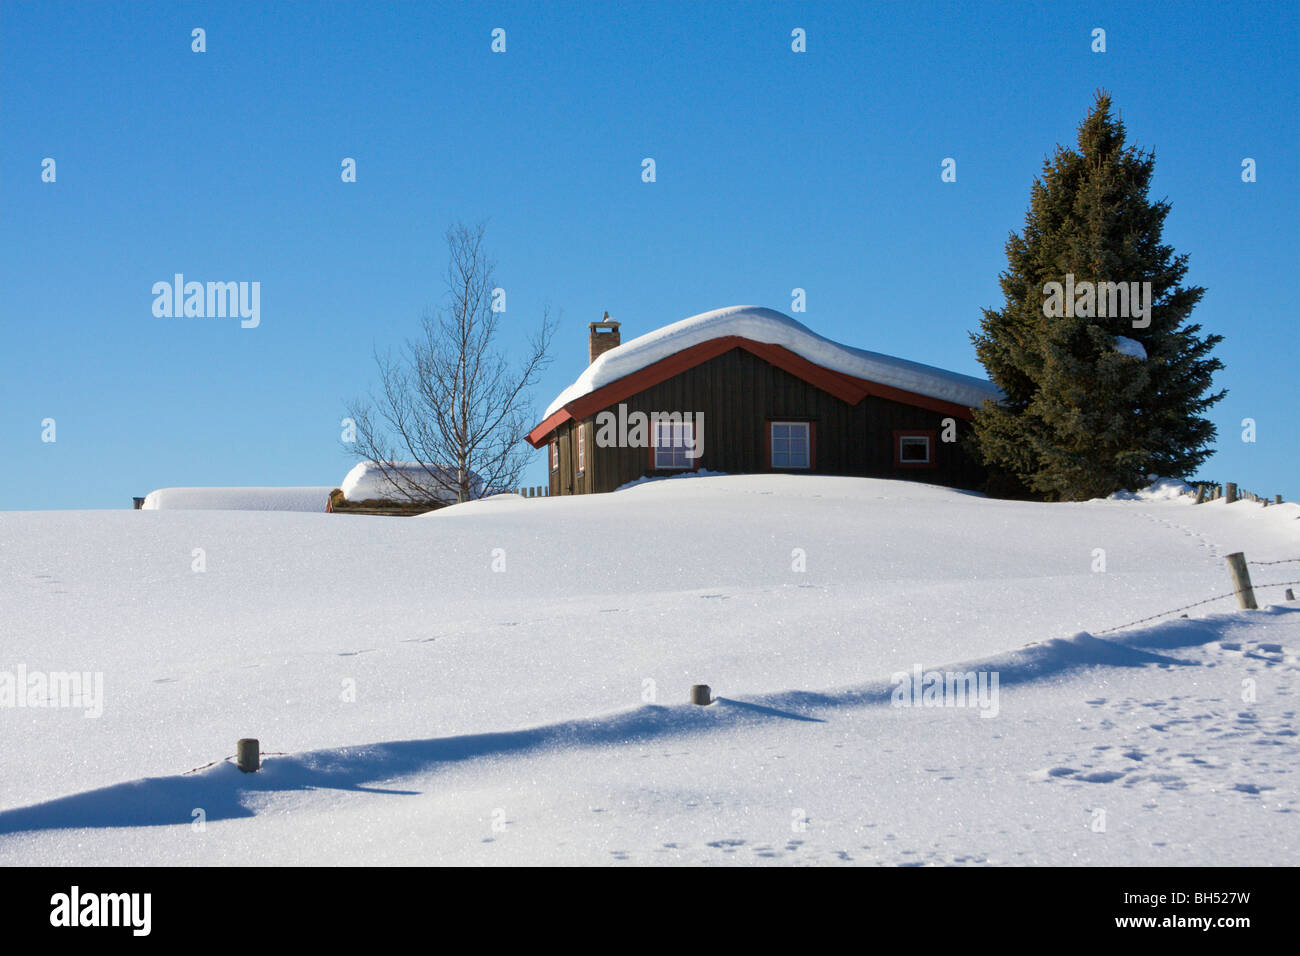 Holiday chalet with snow and conifer tree. - Stock Image